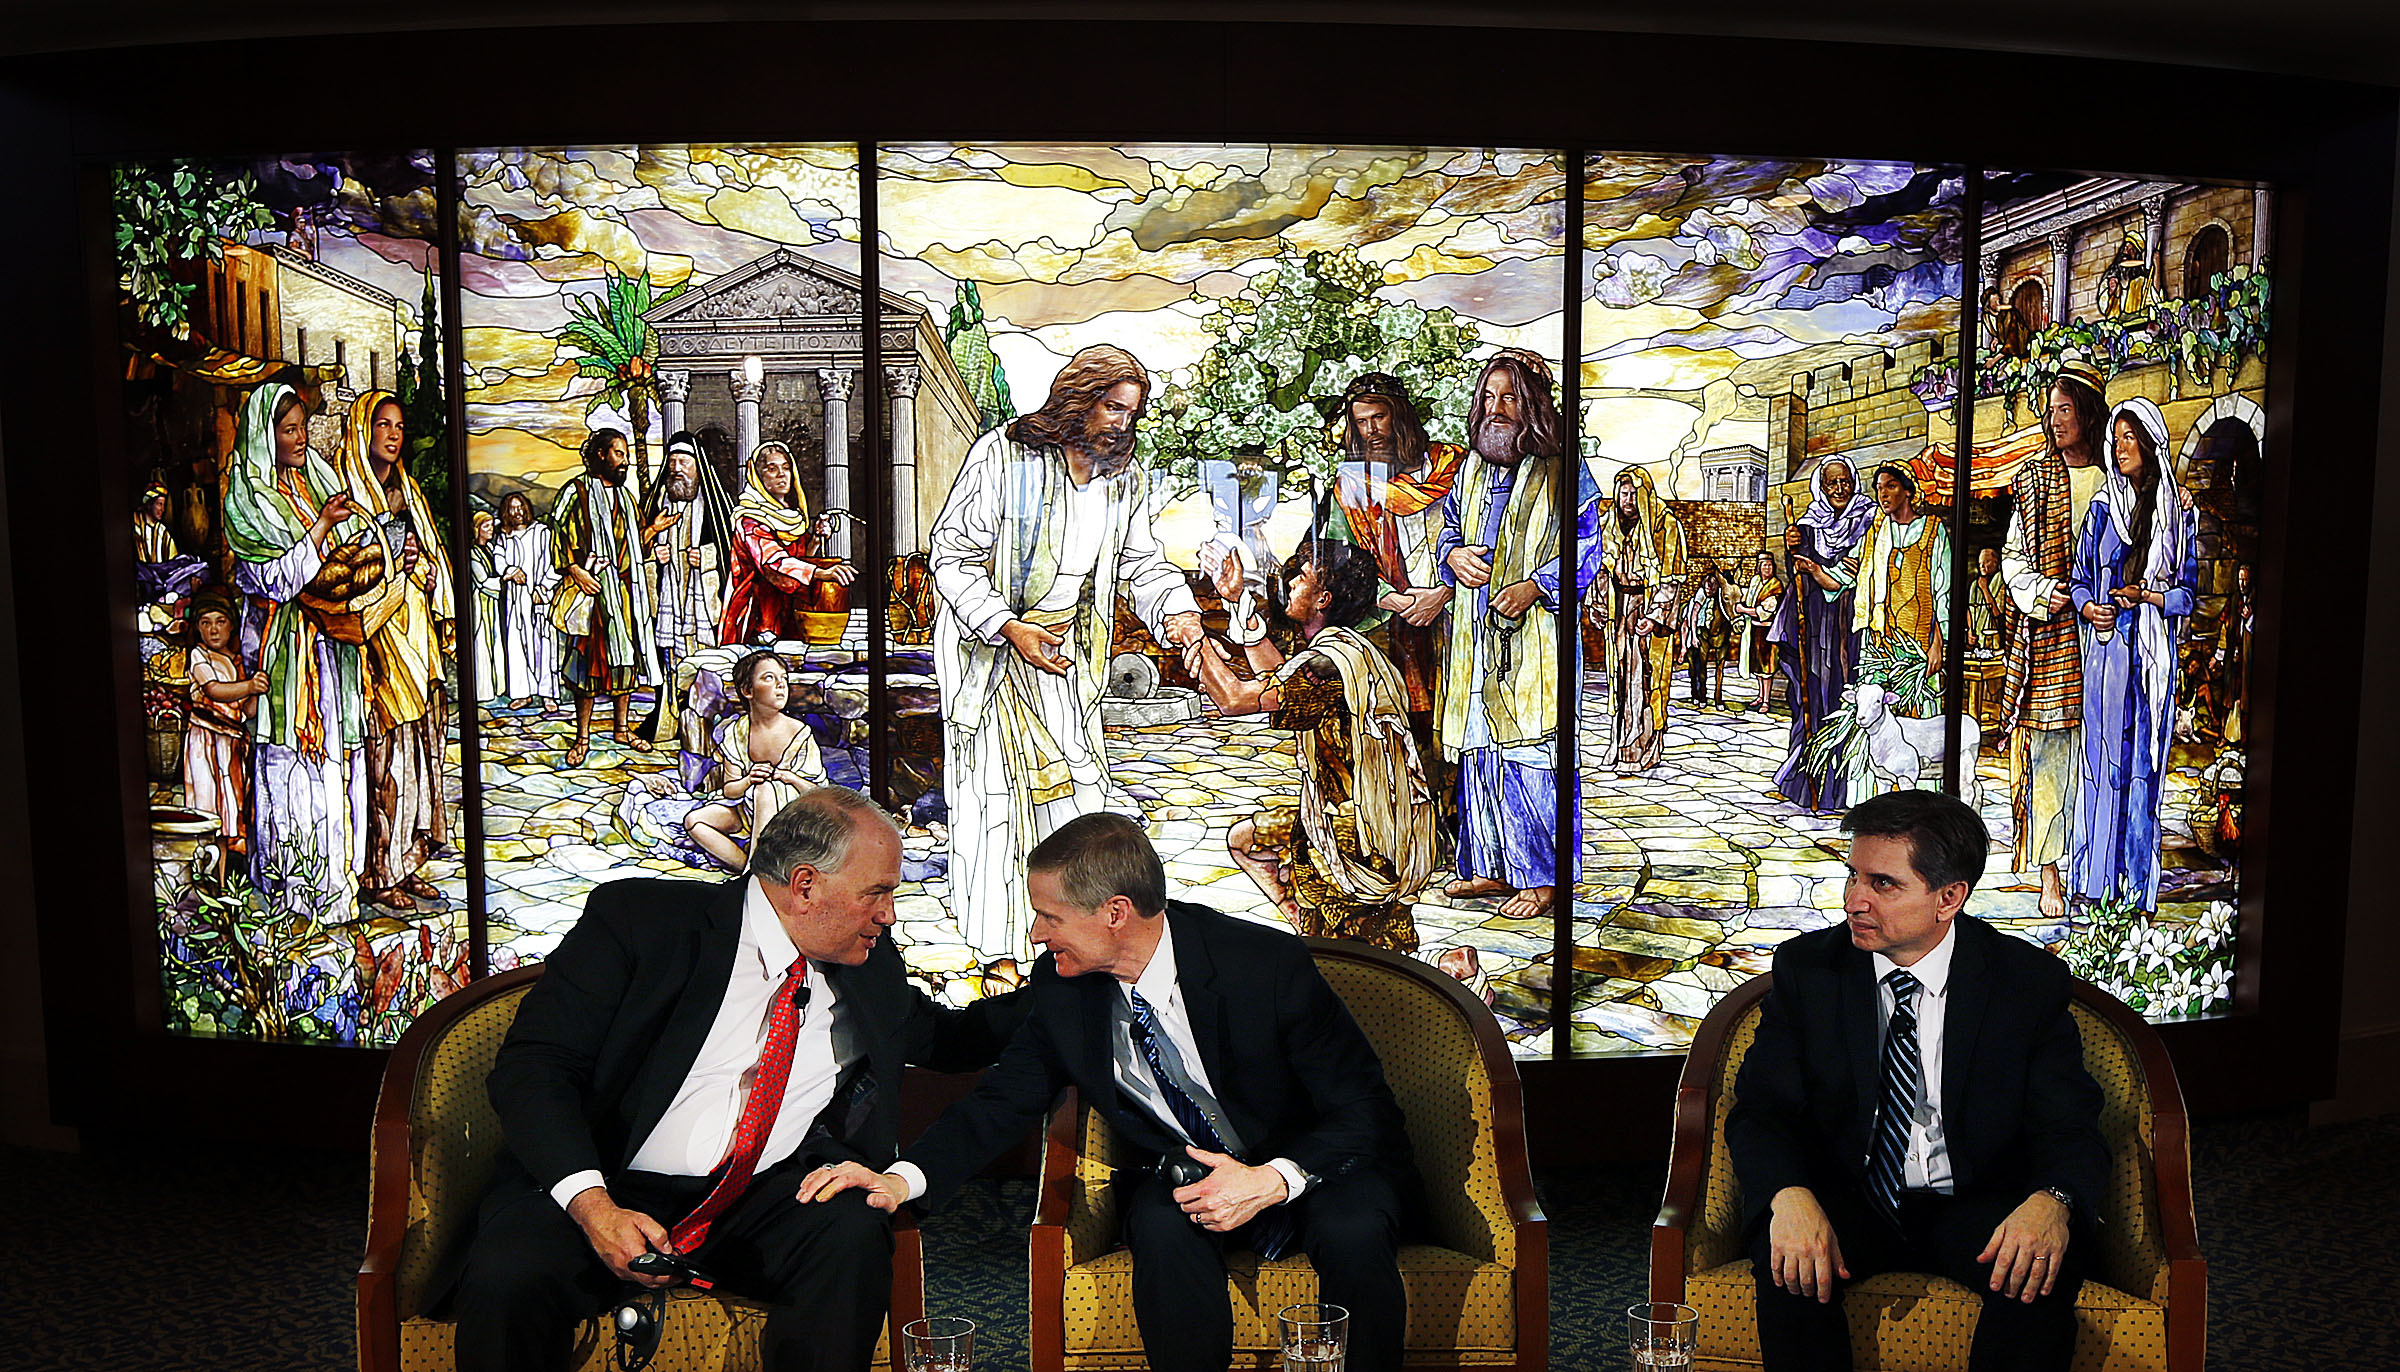 Elder Ronald A. Rasband, left, and Elder David A. Bednar of the Quorum of the Twelve Apostles, along with Elder Massimo De Feo, General Authority Seventy, prepare to begin a press conference in the Rome Temple Visitors' Center of The Church of Jesus Christ of Latter-day Saints on Monday, Jan. 14, 2019.